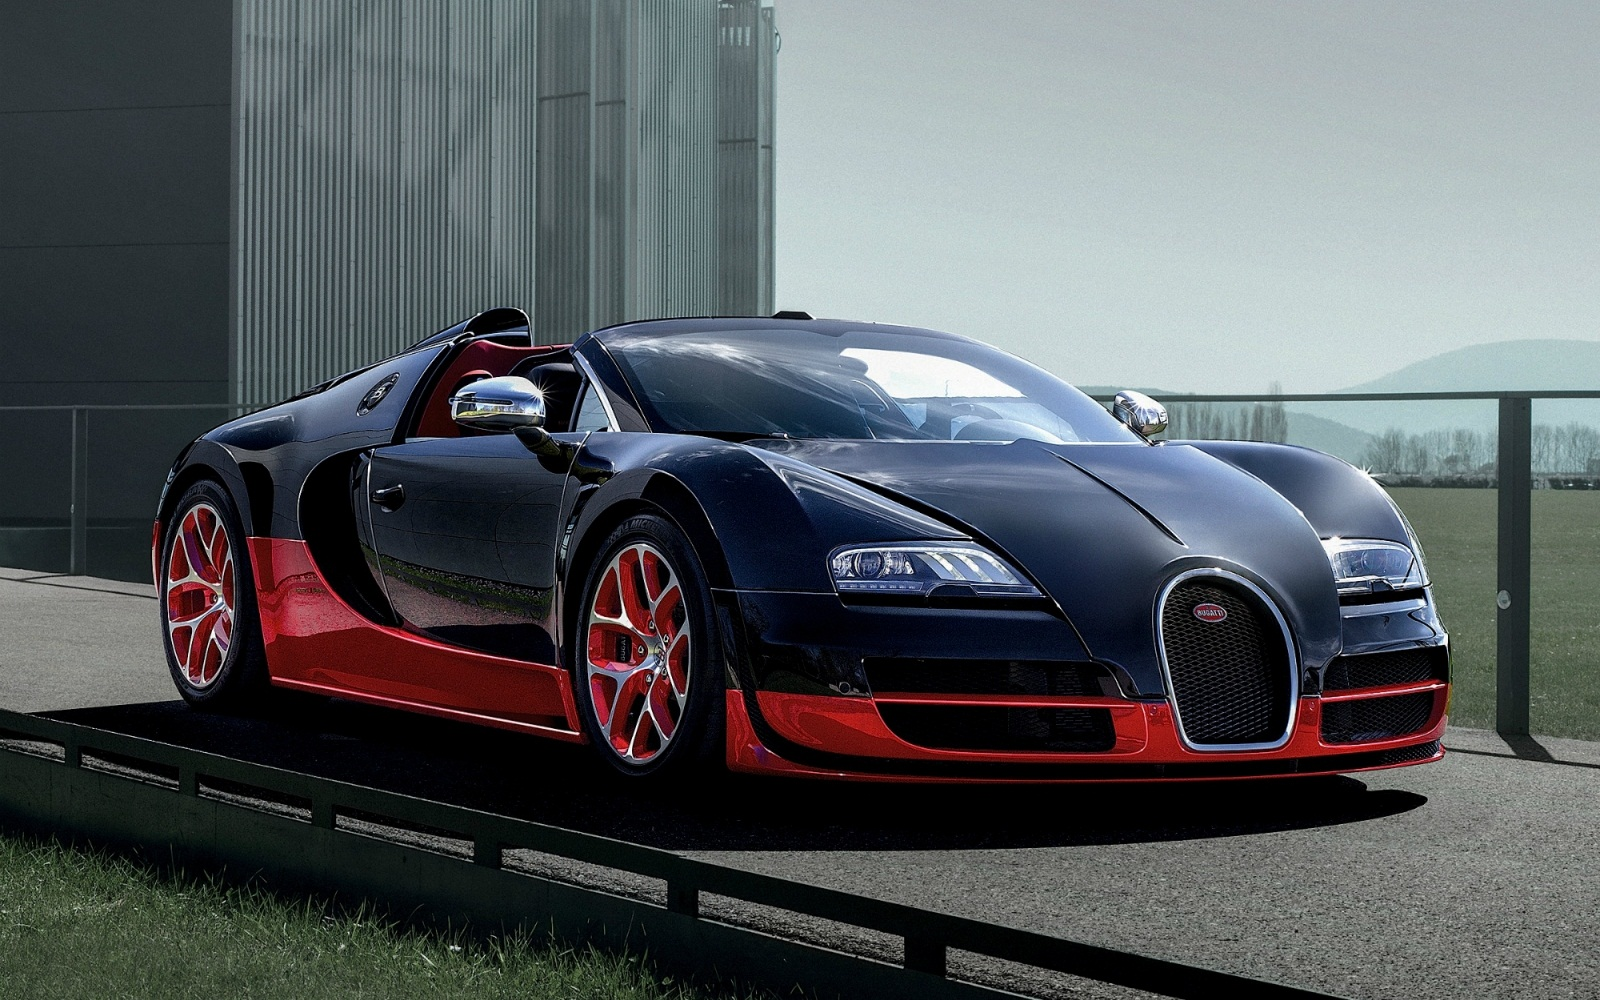 Bugatti Cars Wallpapers Hd: Bugatti Cars 10 Cool Hd Wallpaper